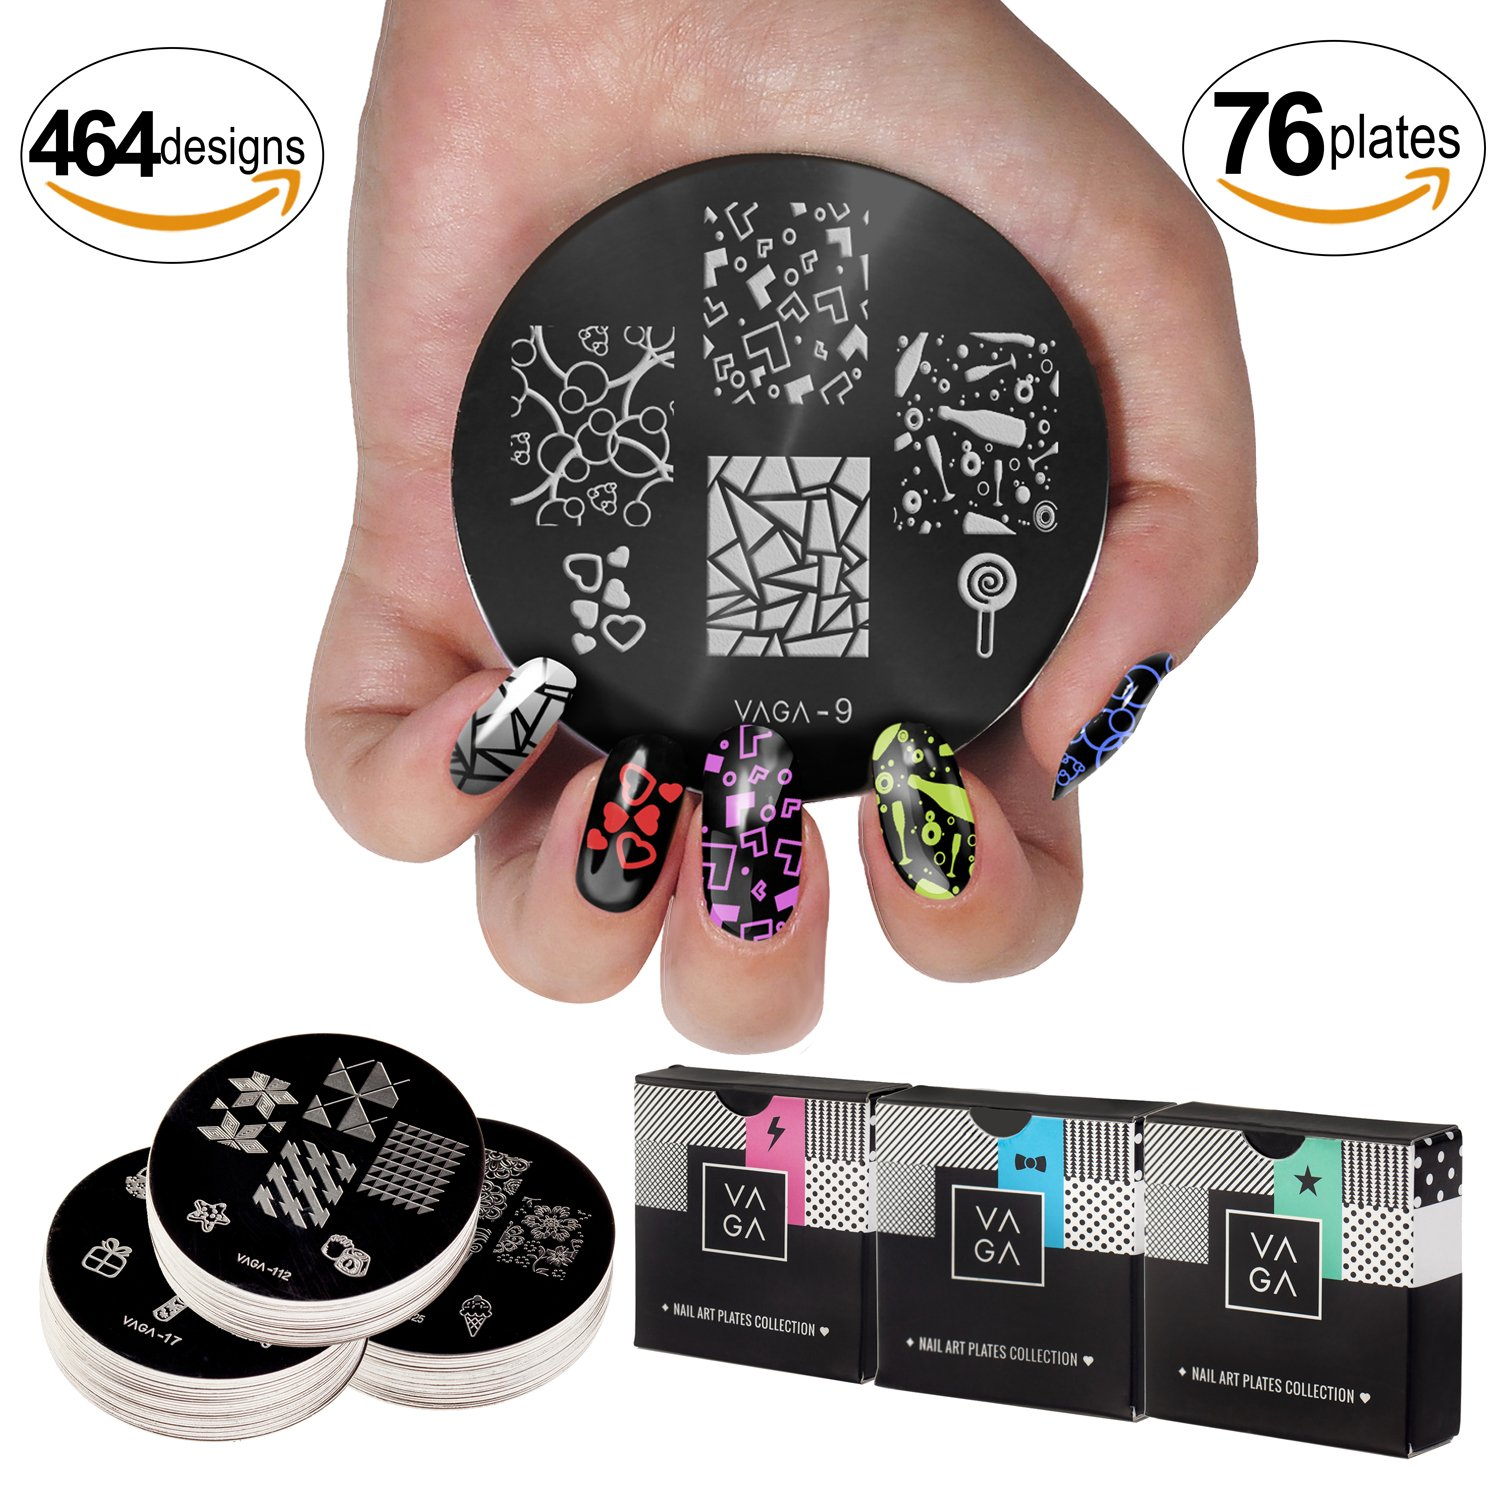 Best Value Nail Art Set With 76 Premium Quality Stamp Stencils / Stamping Plates / Templates With Numerous Different Patterns By VAGA